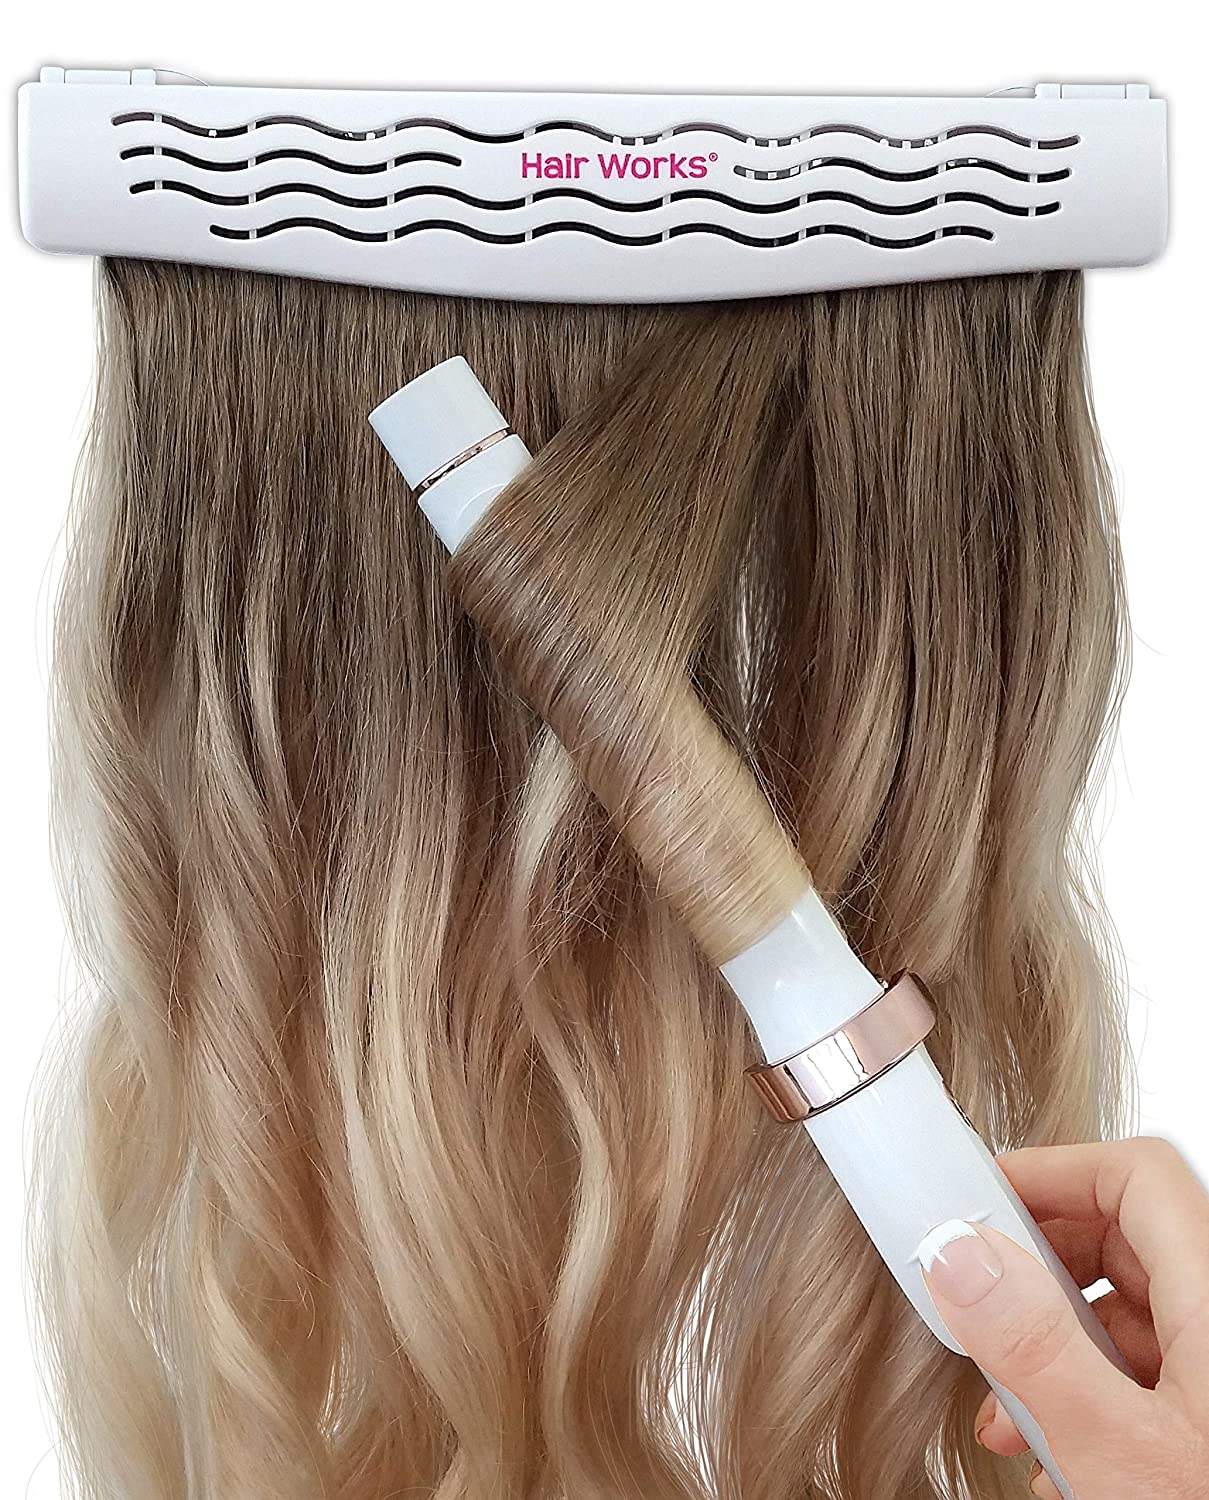 Hair Works 4-in-1 Hair Extension Style Caddy - The Original Hair Extension Holder Designed To Securely Hold Your Extensions While You Wash, Style, Pack and Store Them (White)